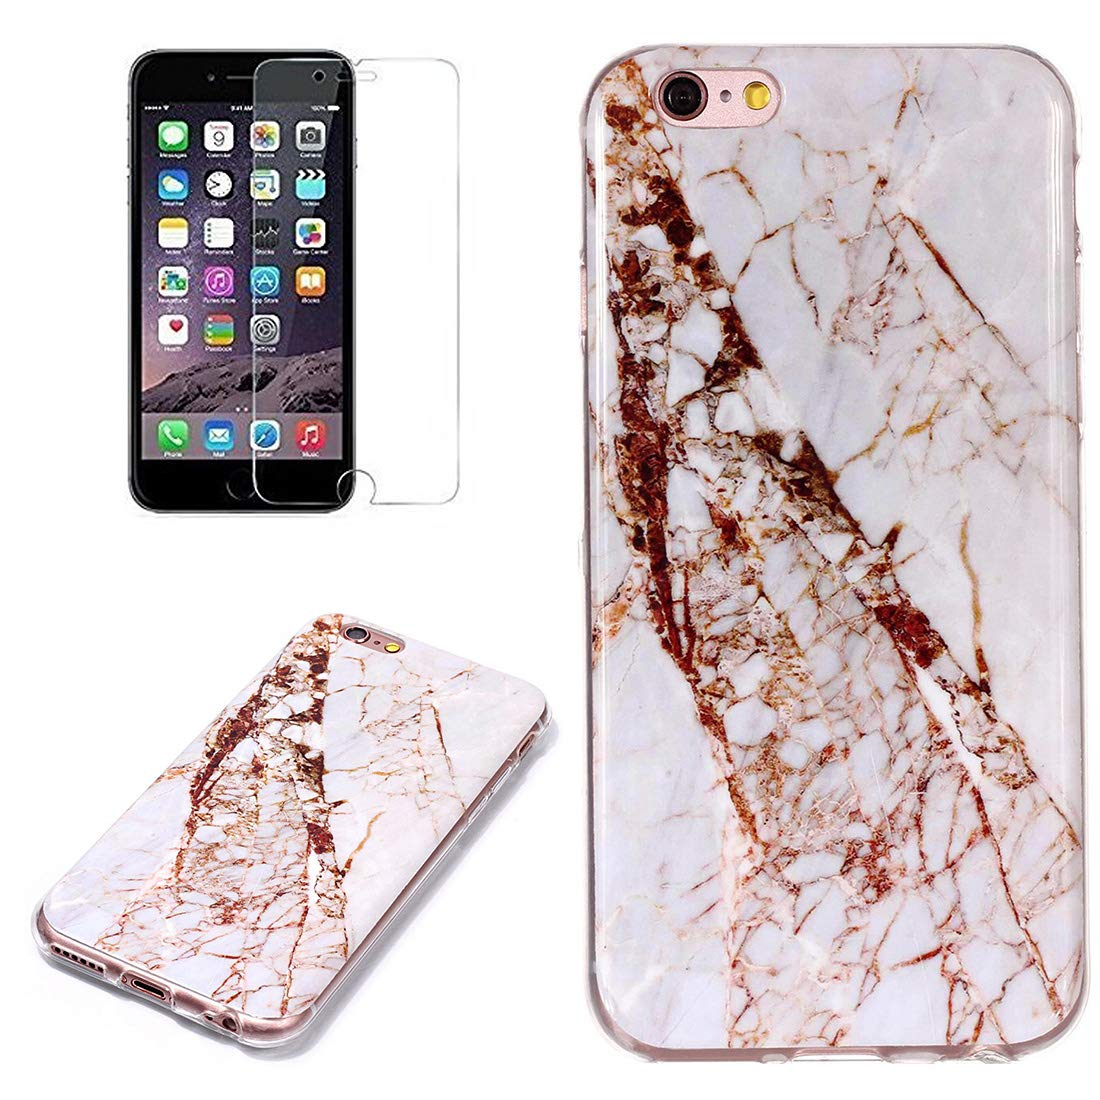 for iPhone 5/5S iPhone SE Marble Case with Screen Protector,Unique Pattern Design Skin Ultra Thin Slim Fit Soft Gel Silicone Case,QFFUN Shockproof Anti-Scratch Protective Back Cover - White by QFFUN (Image #1)